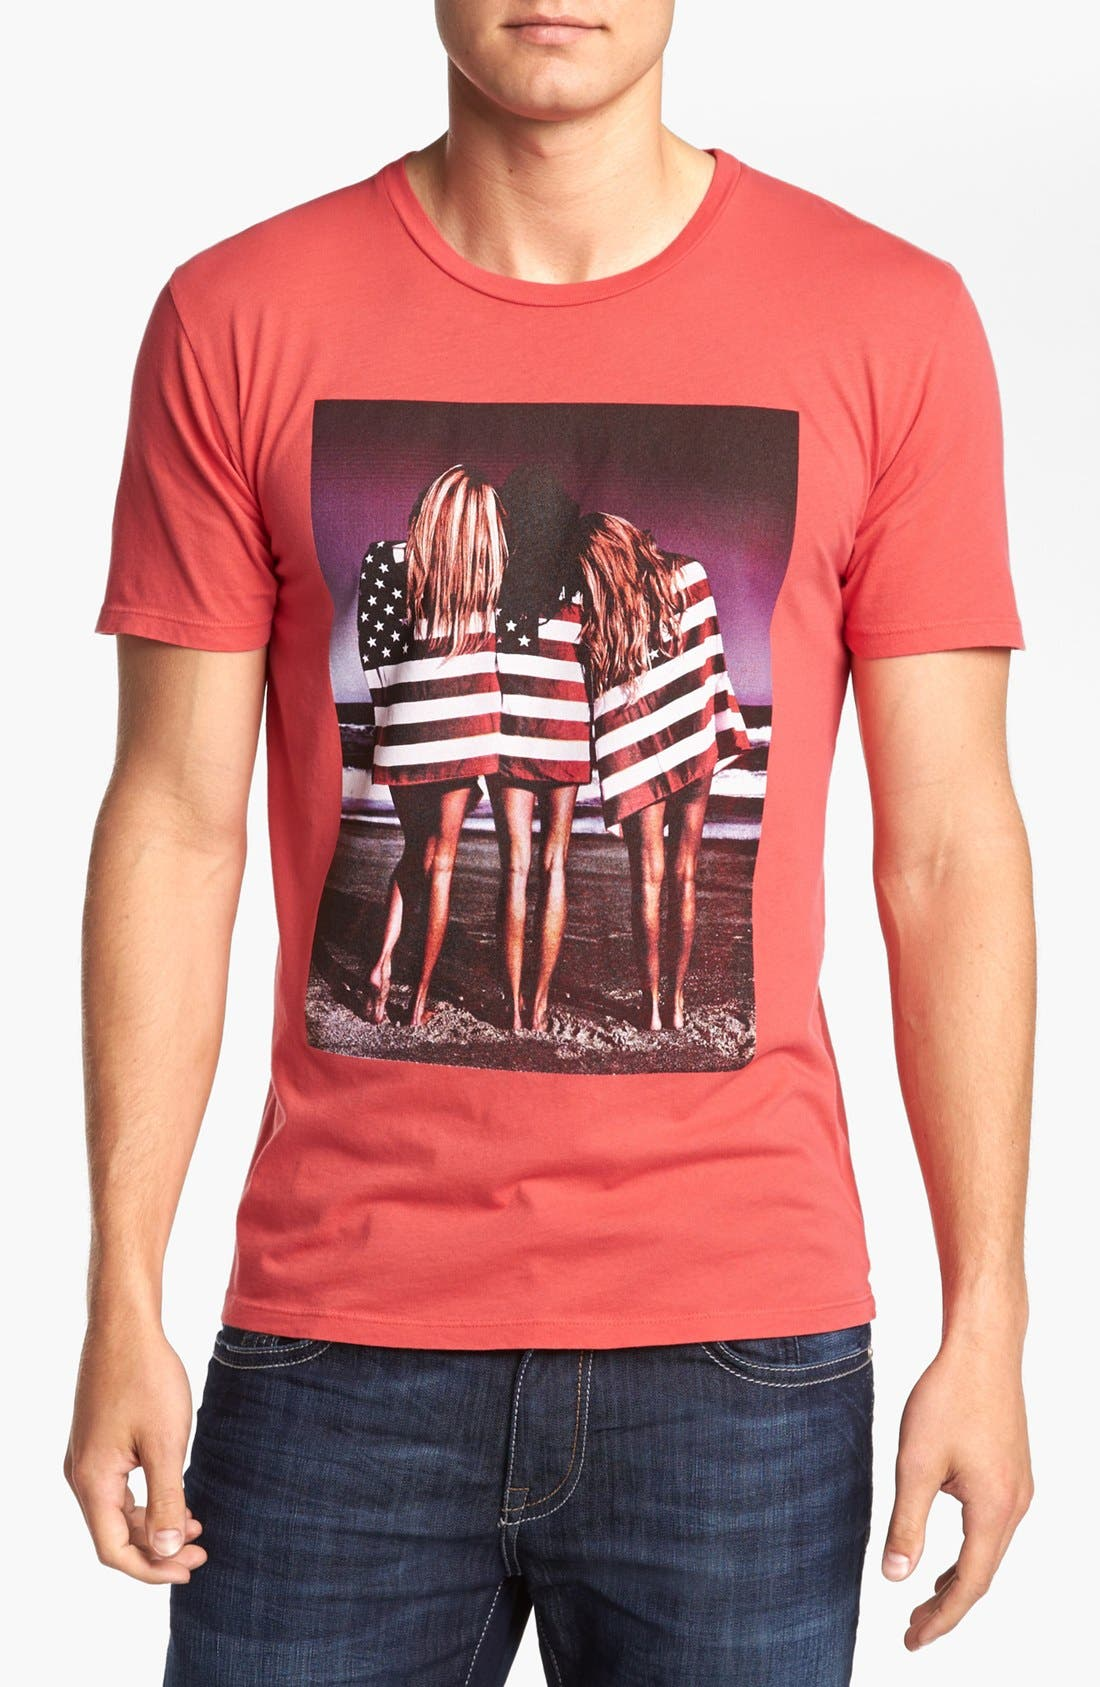 Alternate Image 1 Selected - Altru 'Flag Girls' T-Shirt